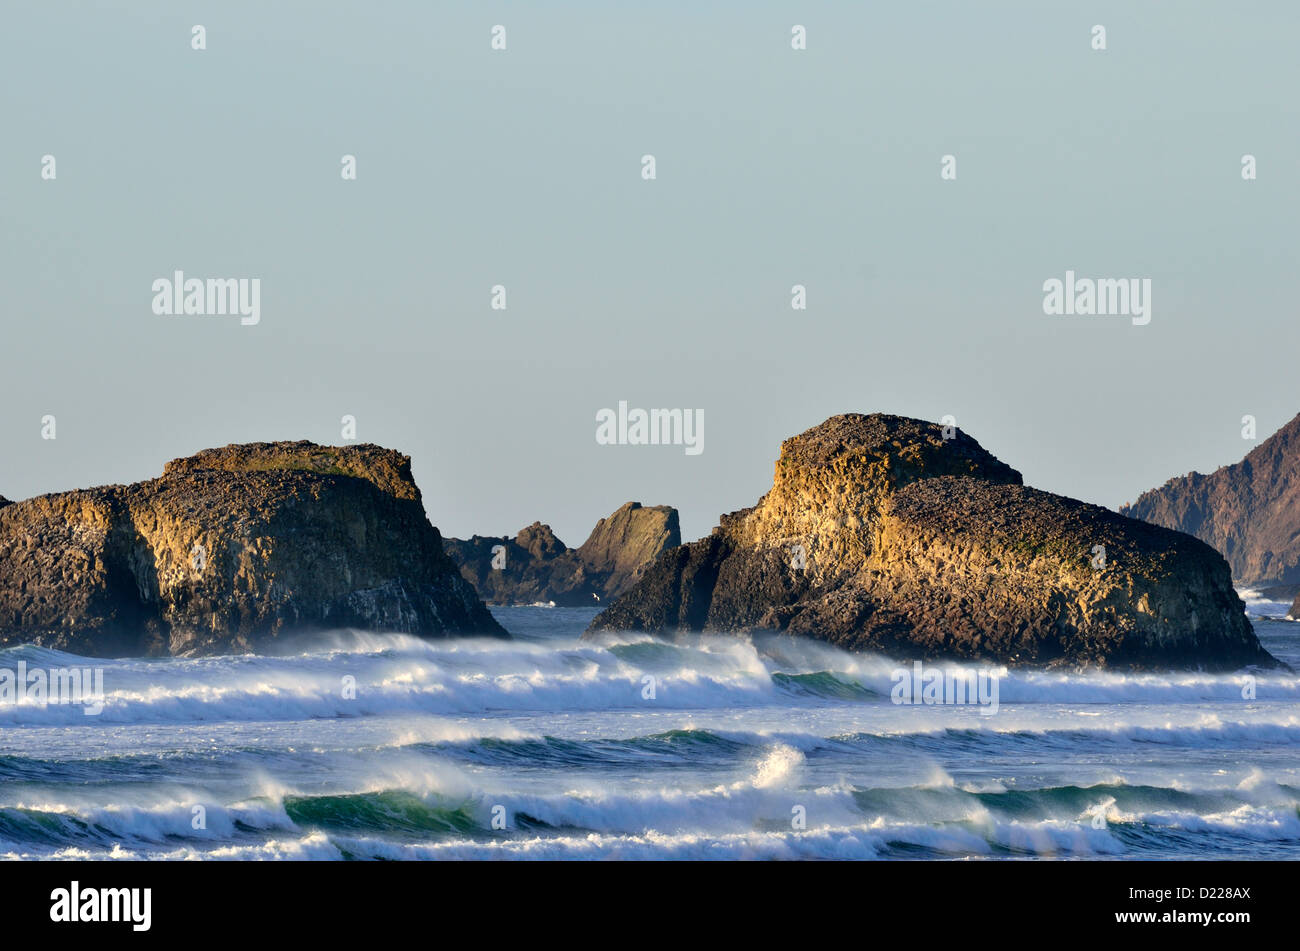 Off-shore rocks and waves at Cannon Beach, OR 130102_x0979 - Stock Image